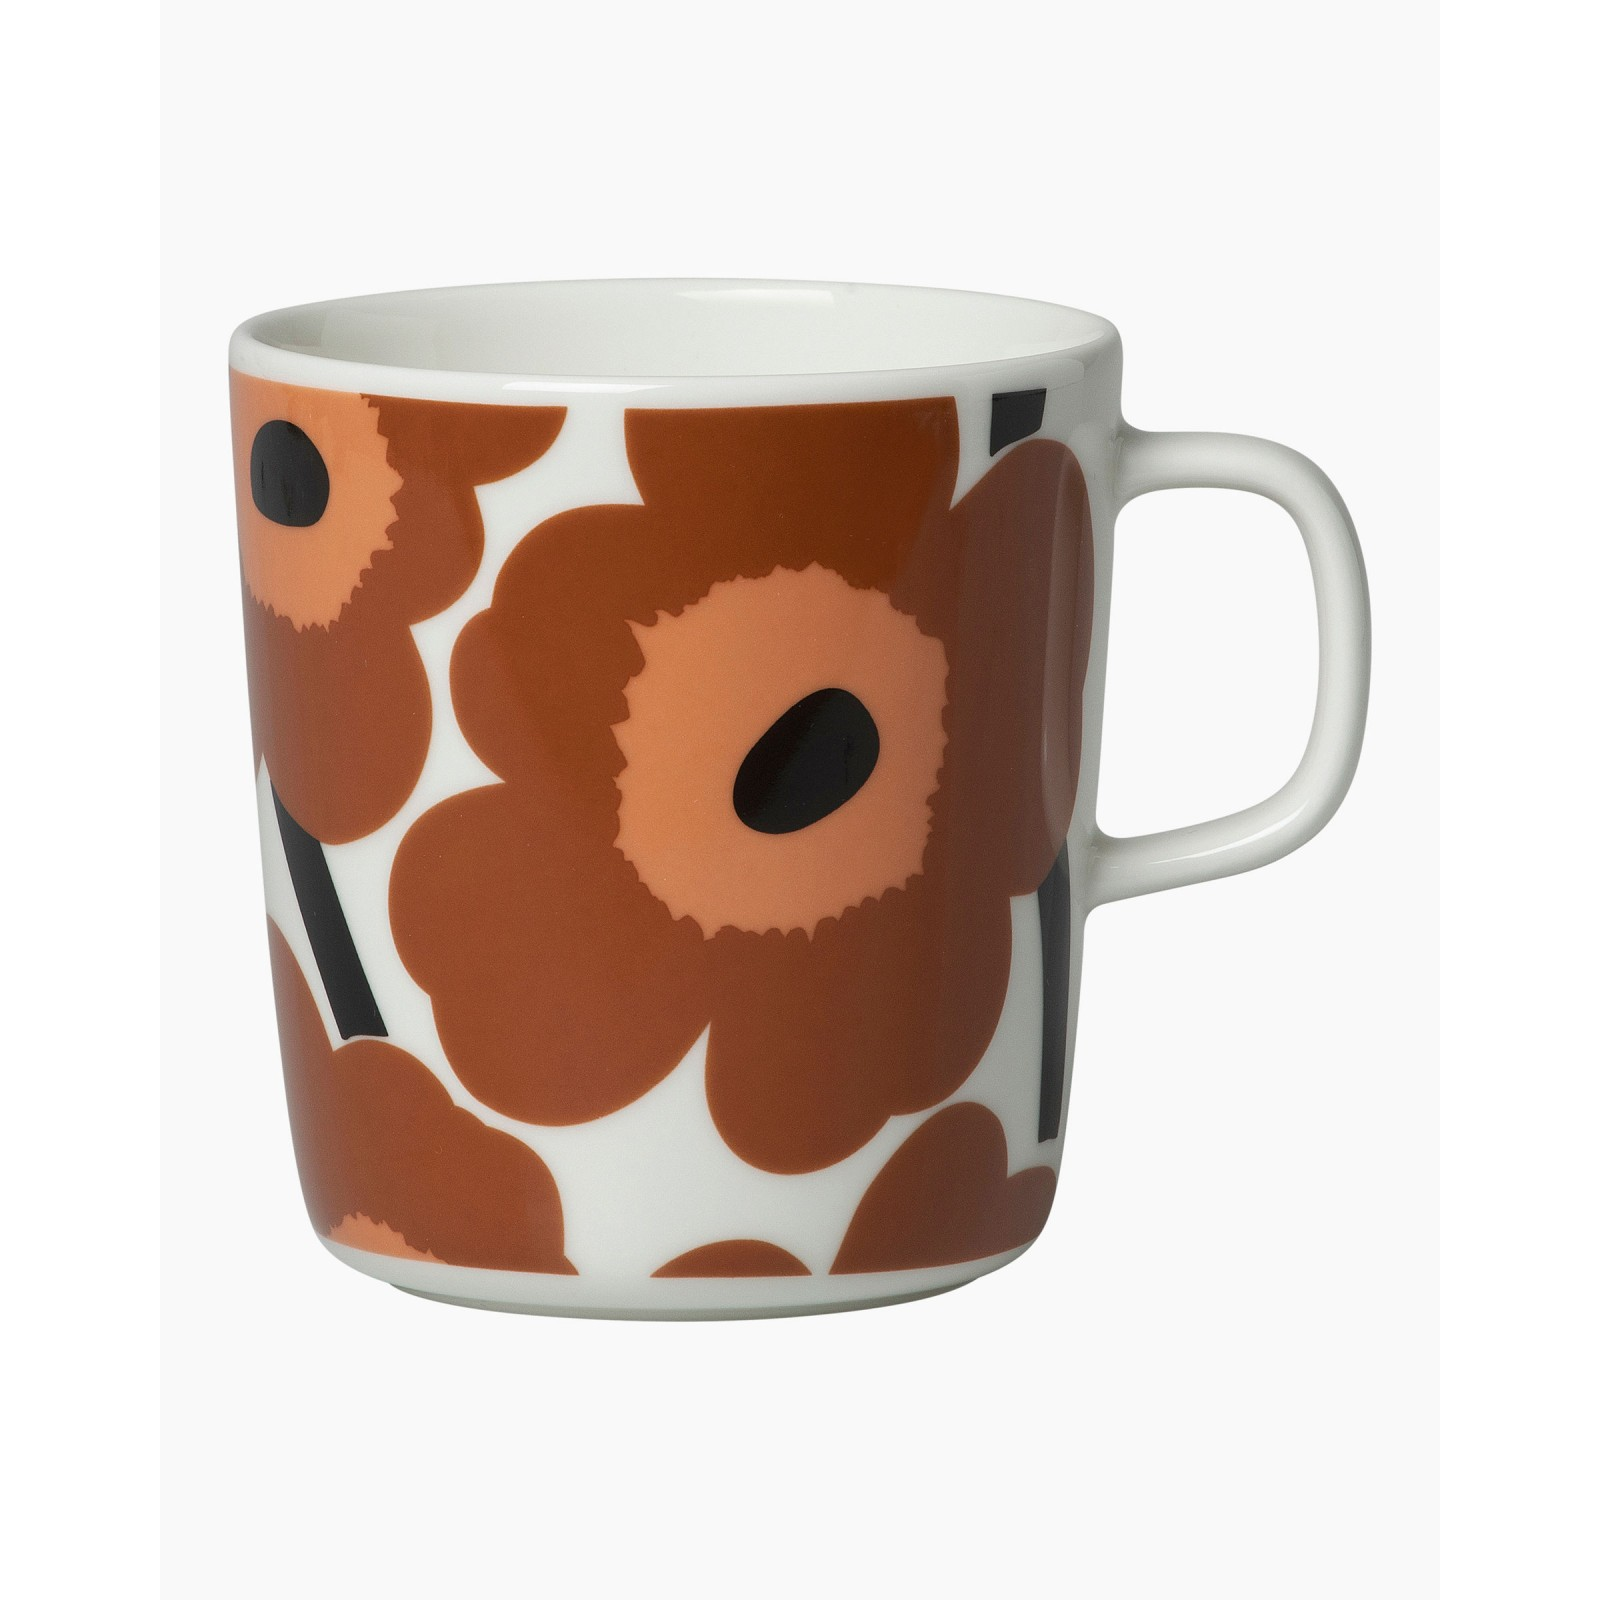 Marimekko Unikko Mug 4dl Brown Orange